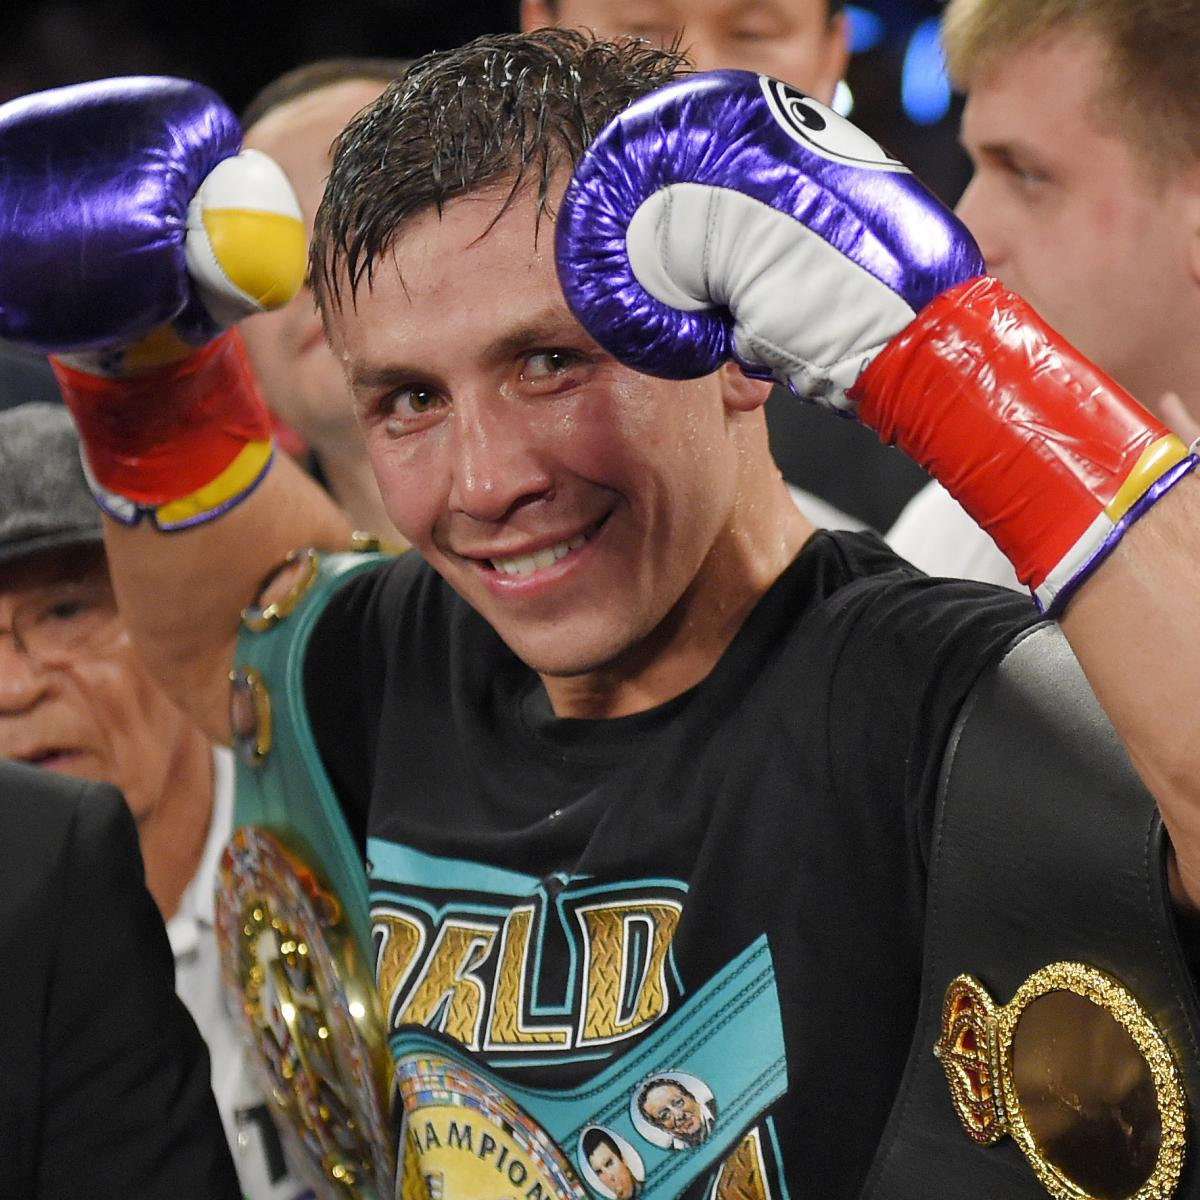 Gennady Golovkin Next Fight: GGG Comments On Canelo